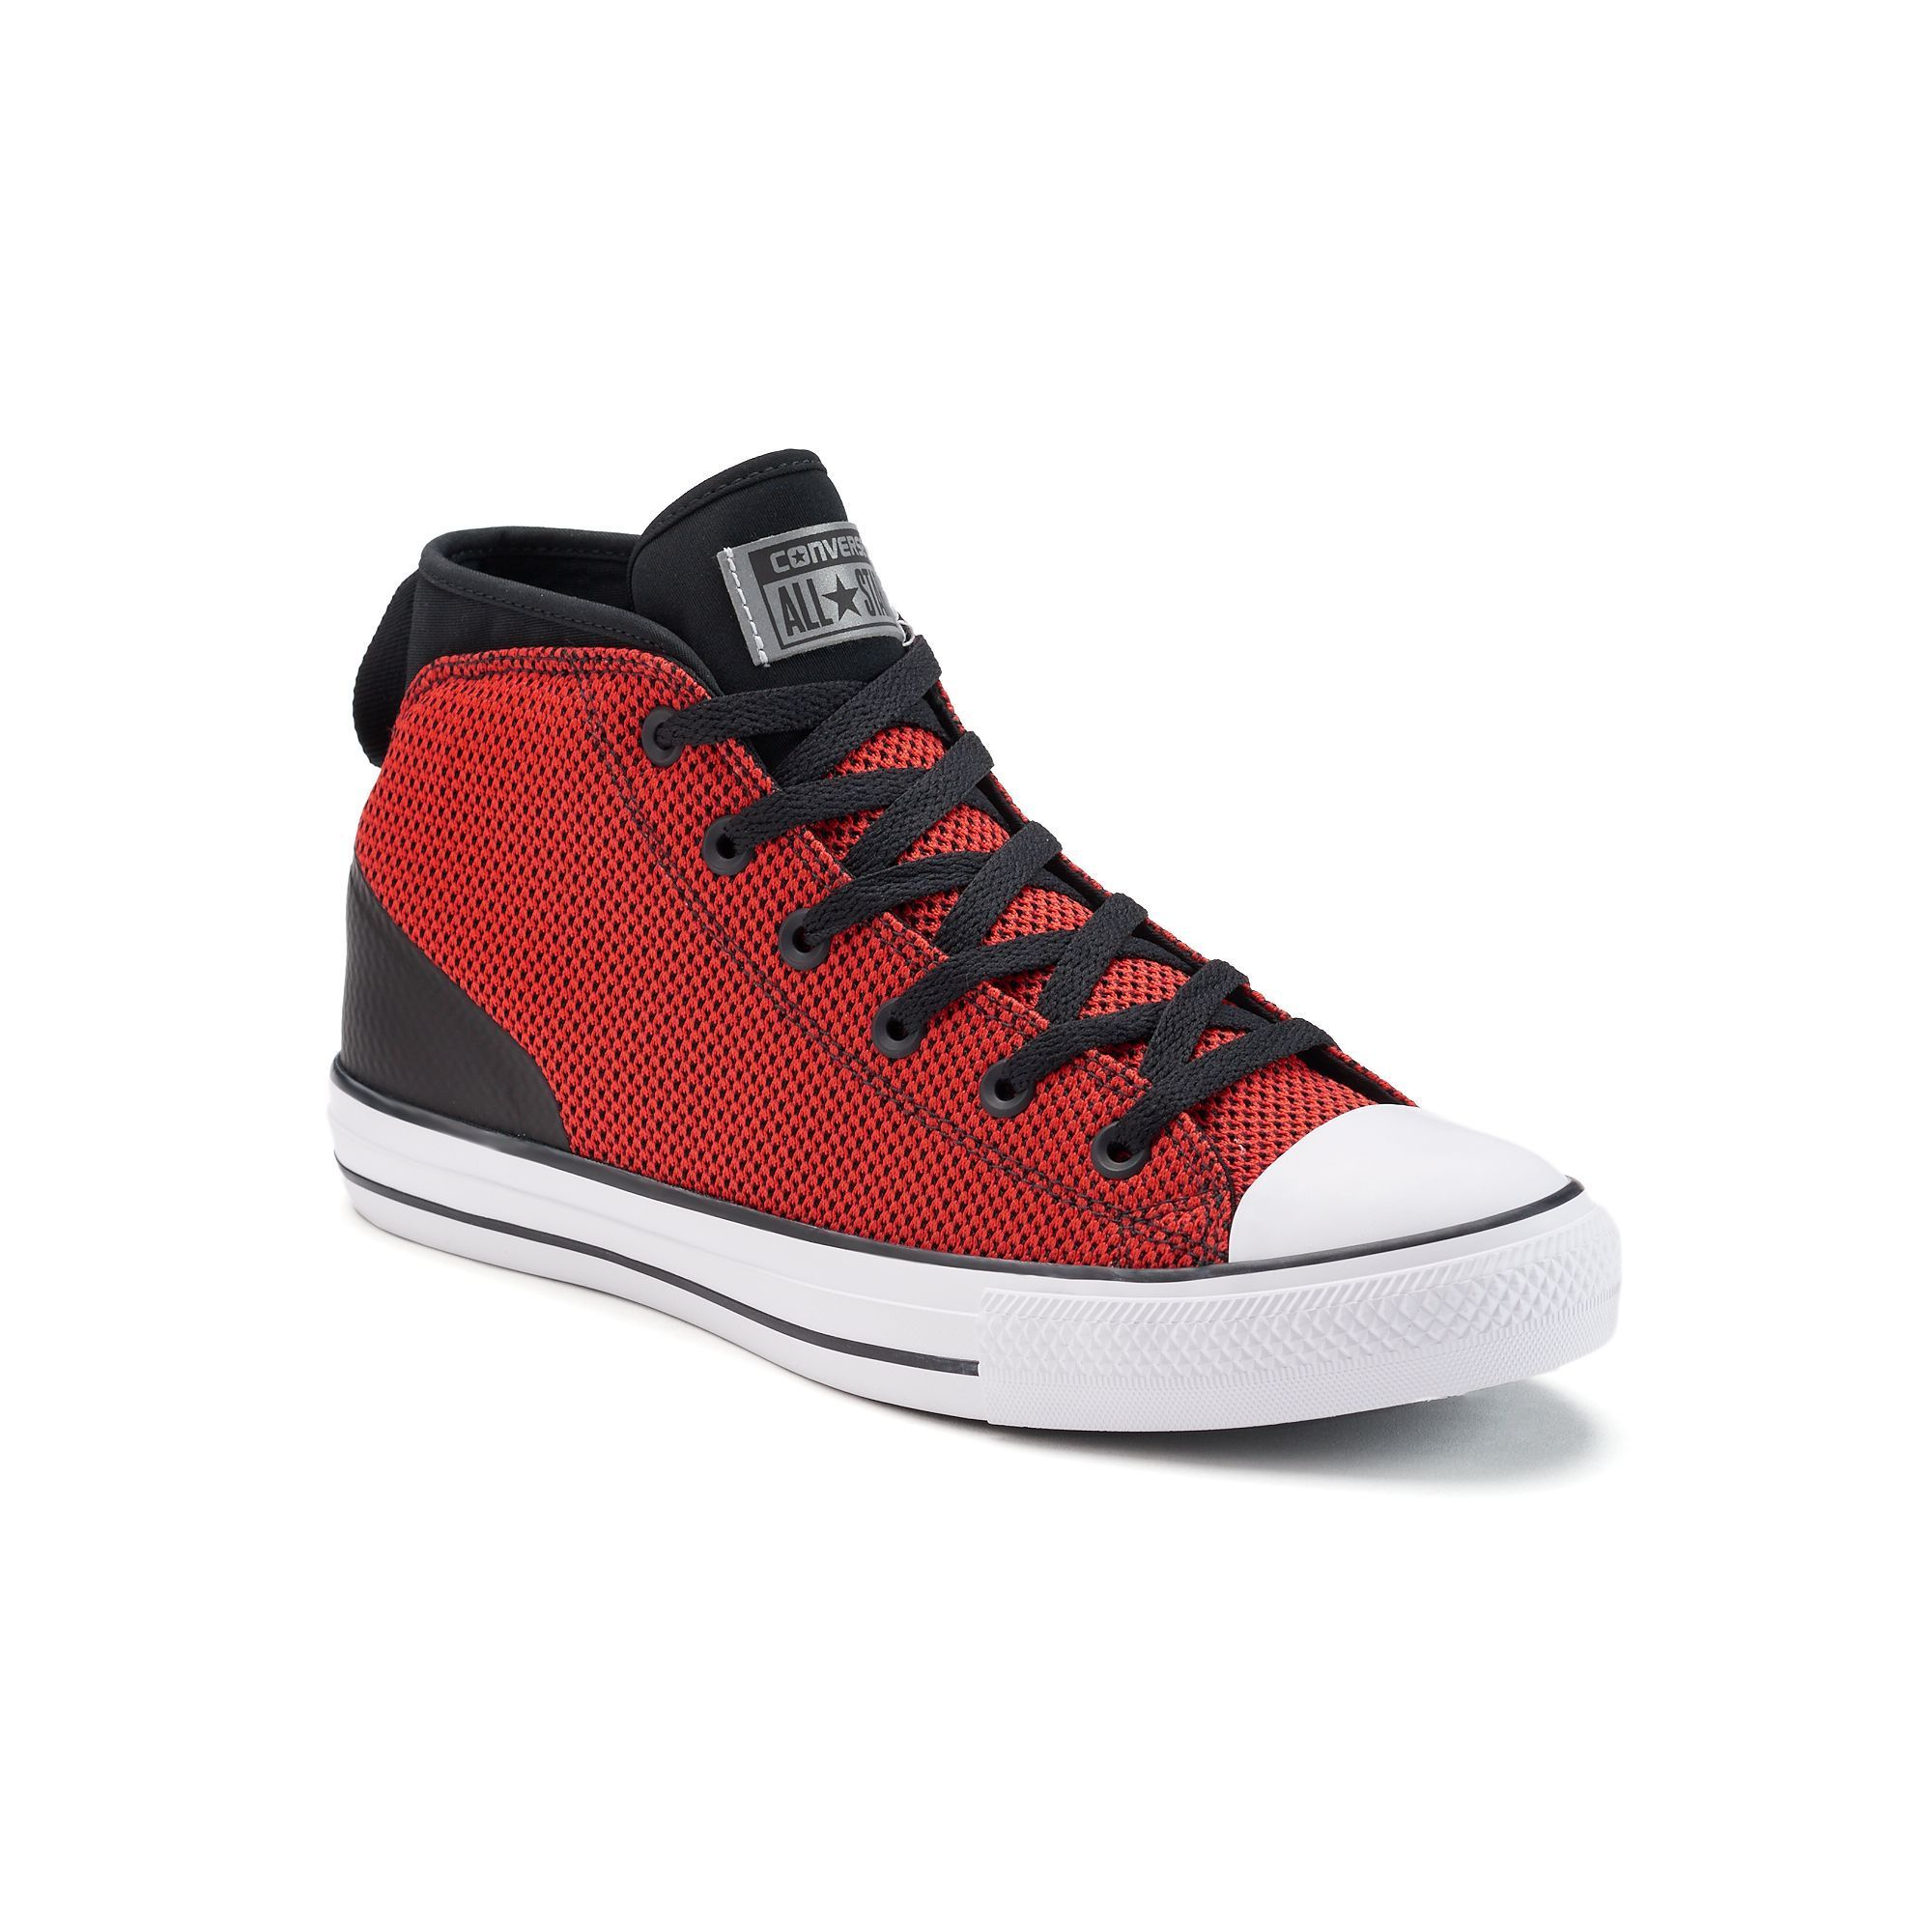 49f05b88f7d703 Men s Converse Chuck Taylor All Star Syde Street Mid Reflective Shoes